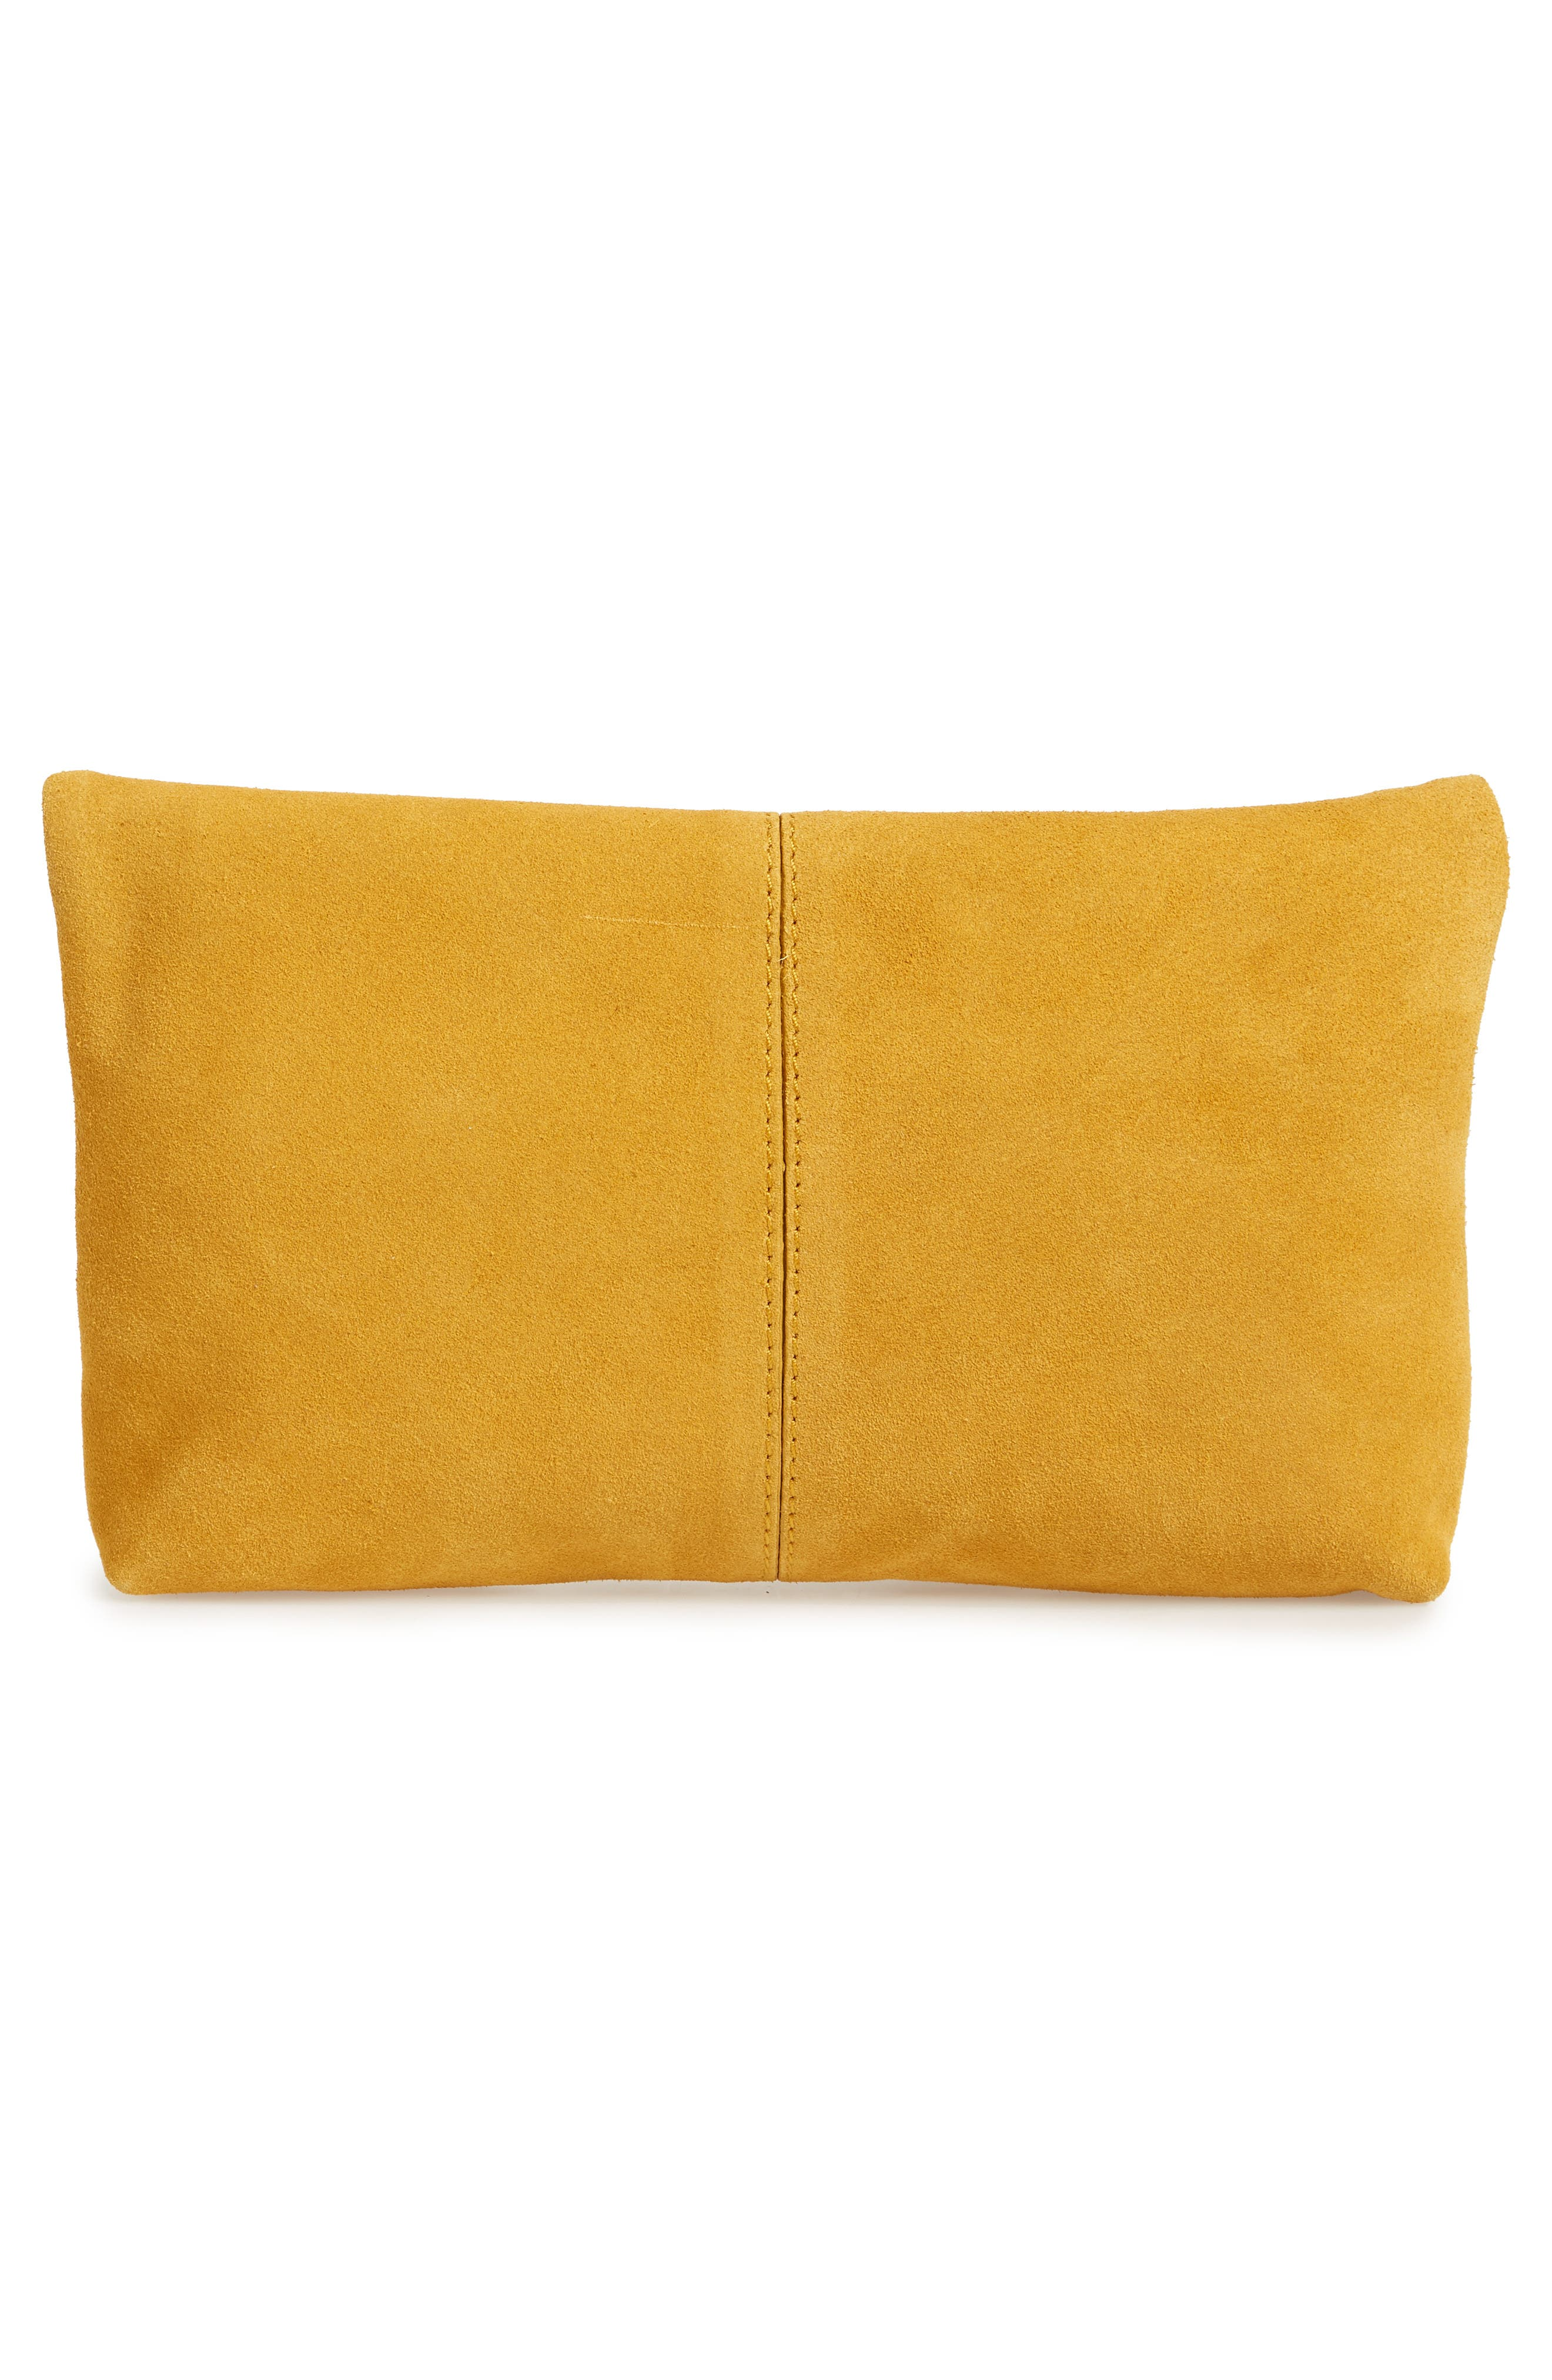 Suede Clutch,                             Alternate thumbnail 5, color,                             Mustard